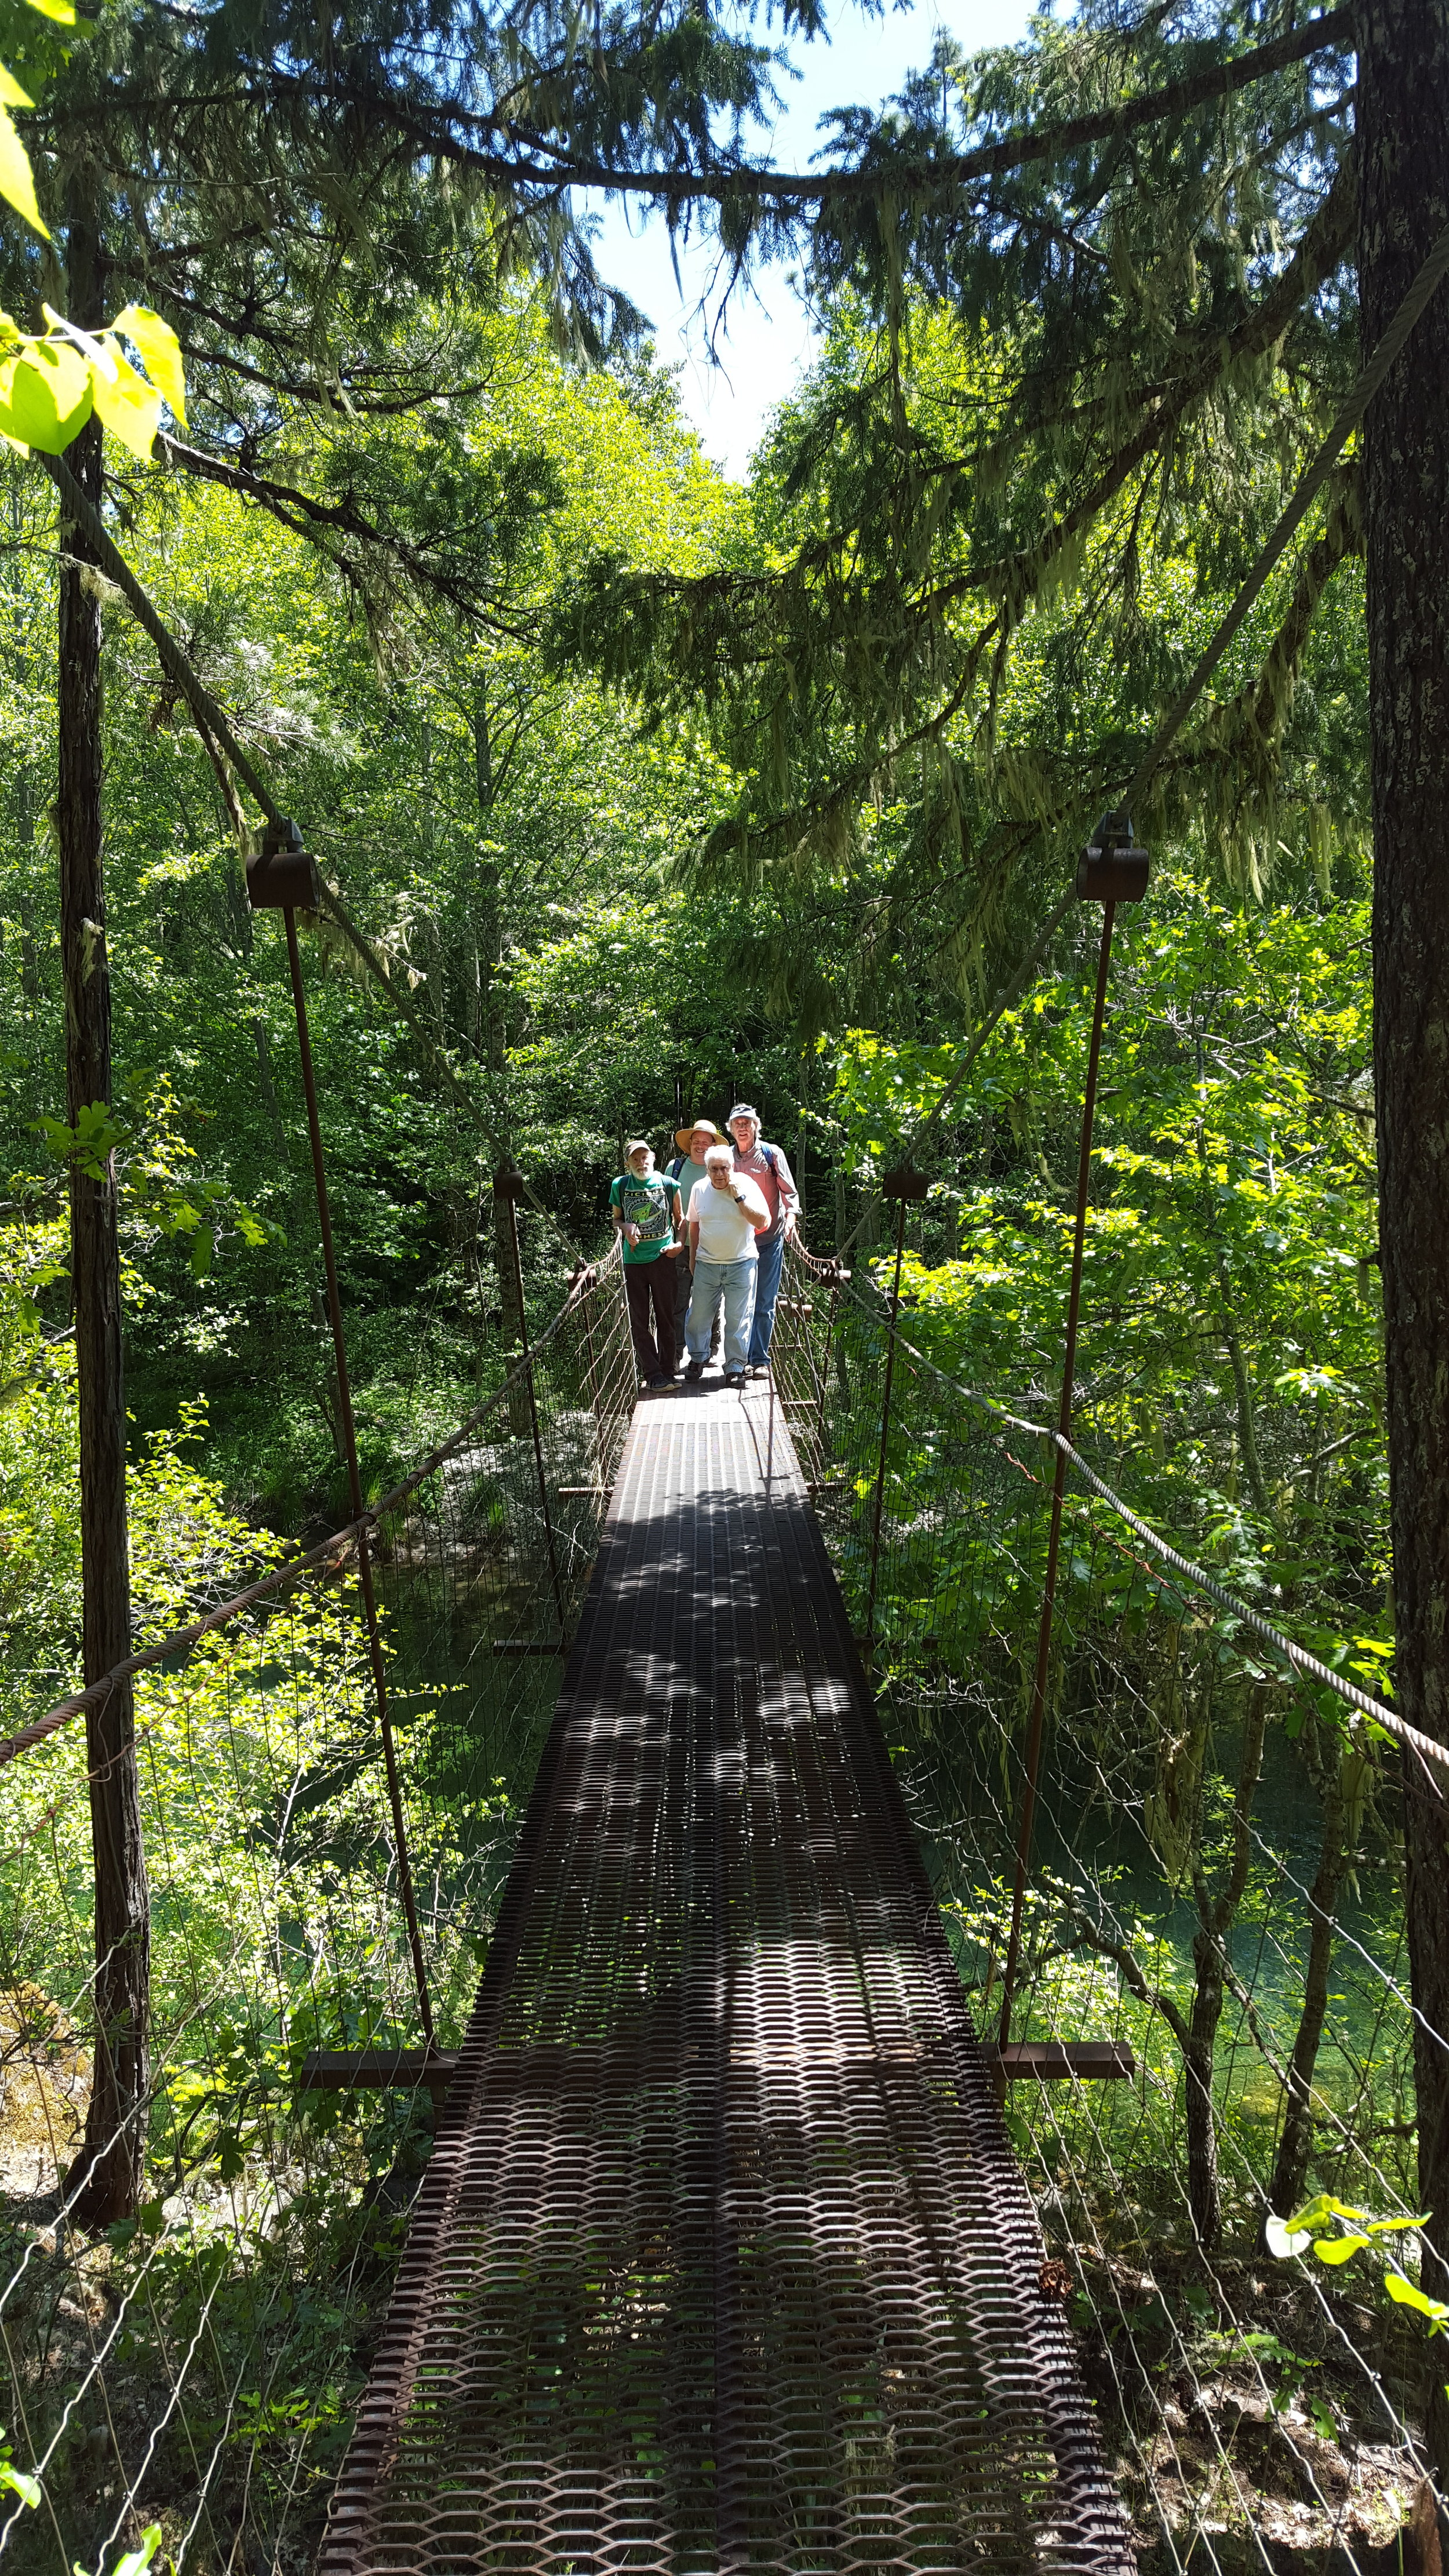 Meadows community suspension bridge with staff and volunteer lands committee members during an annual monitoring visit.